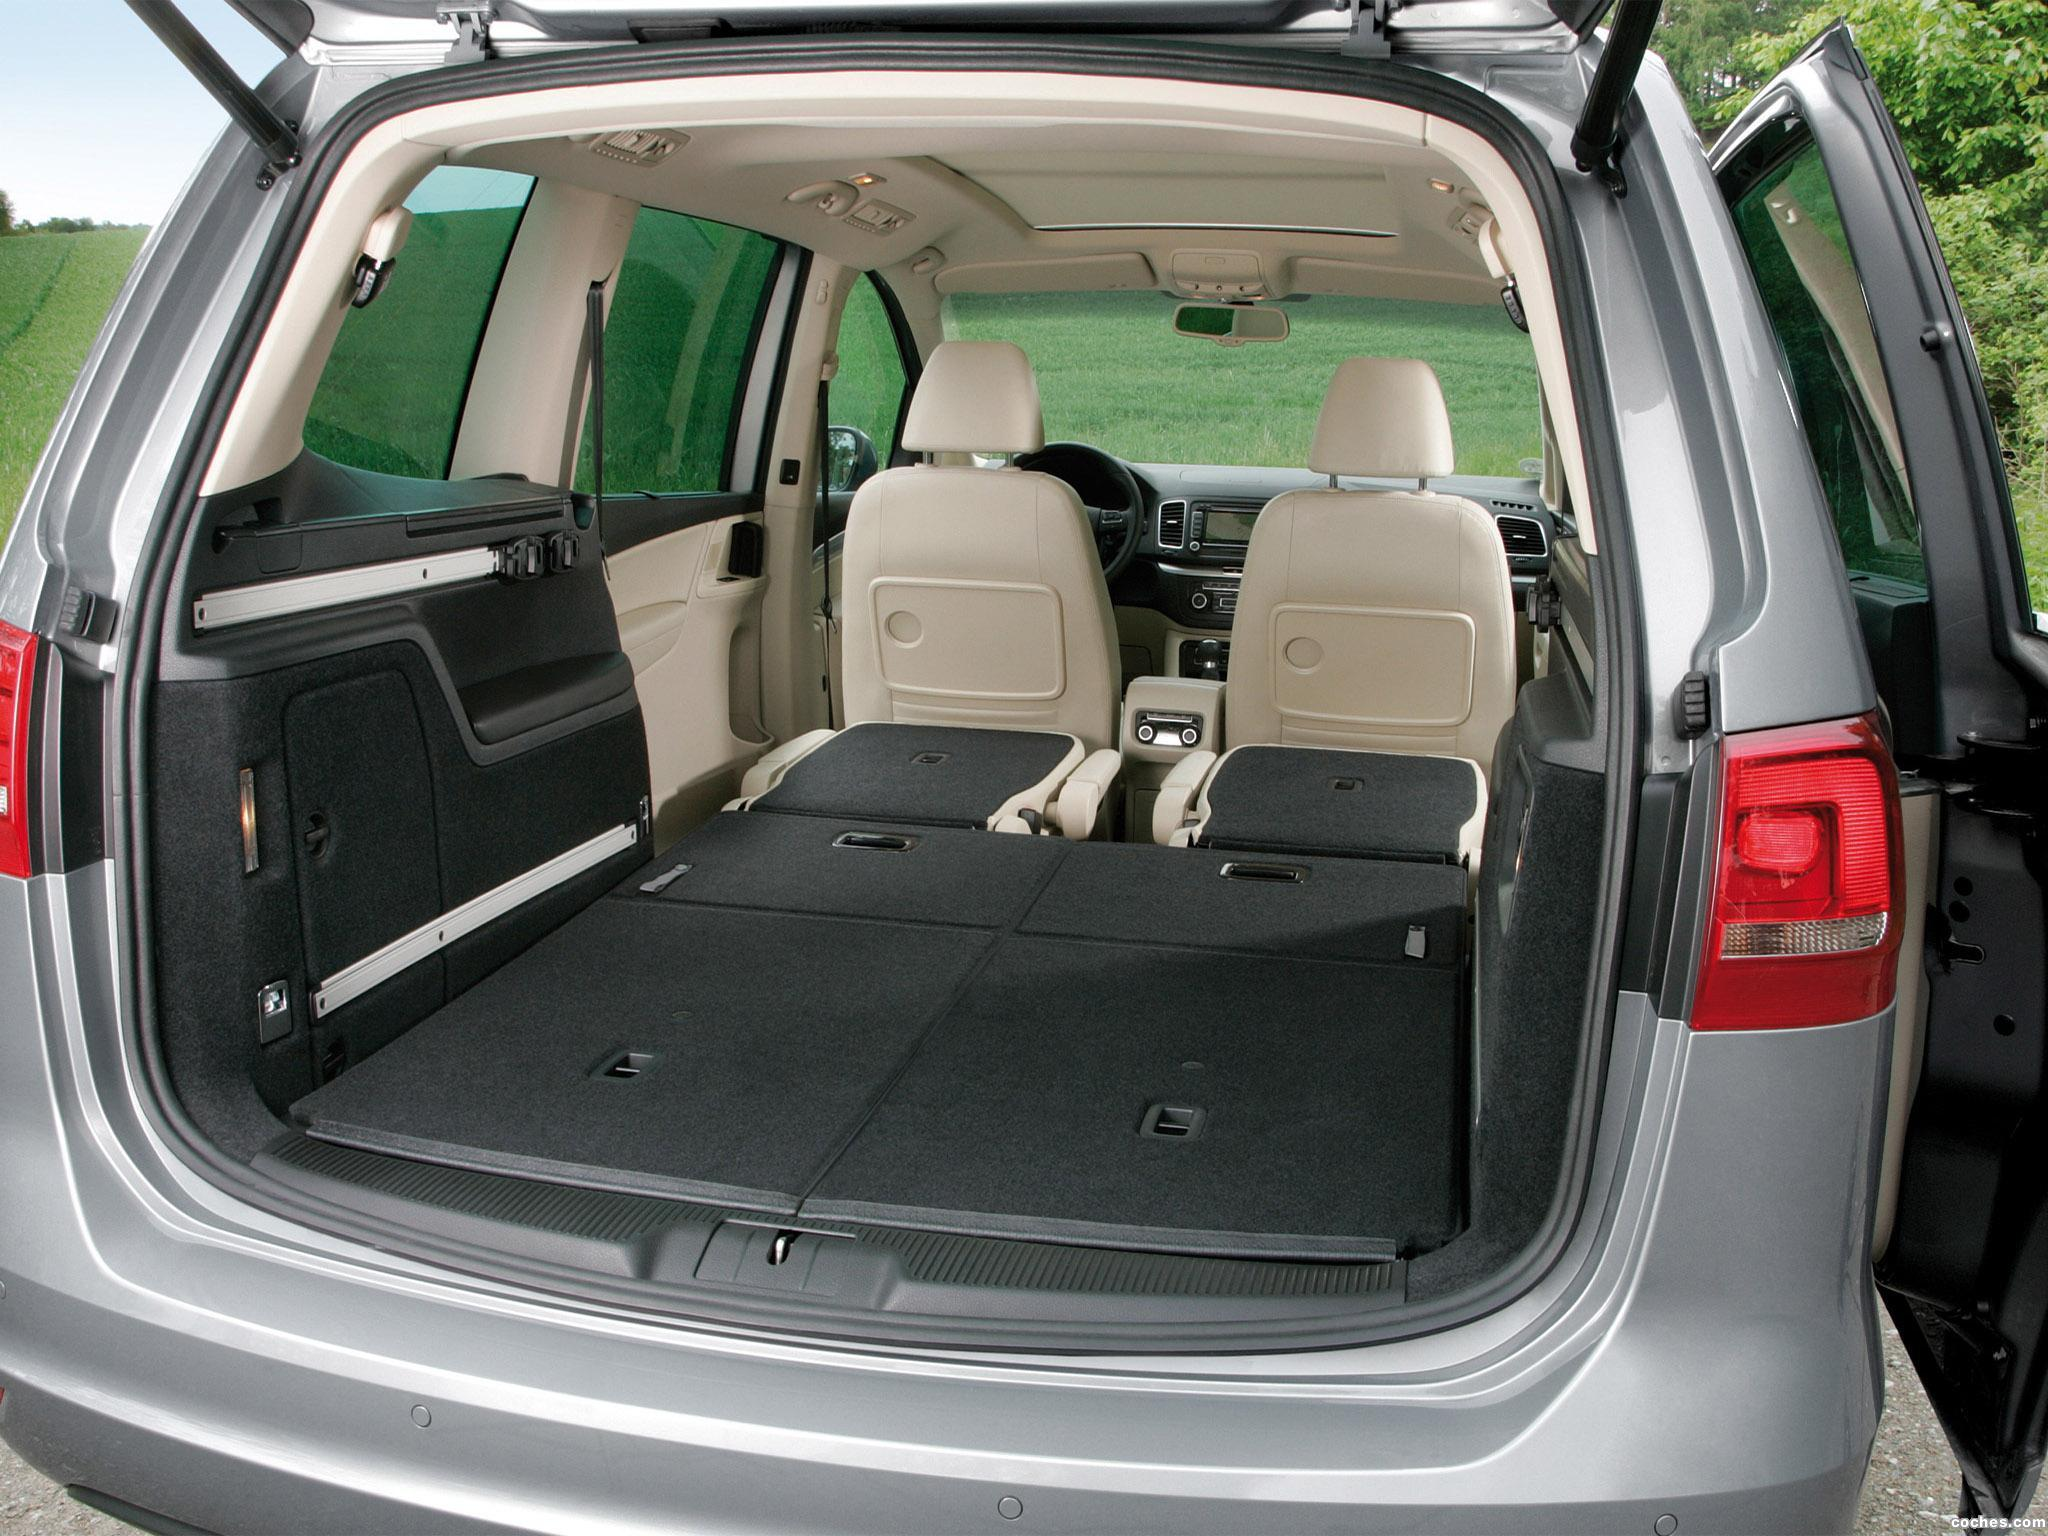 fotos de volkswagen sharan 2010 foto 23. Black Bedroom Furniture Sets. Home Design Ideas